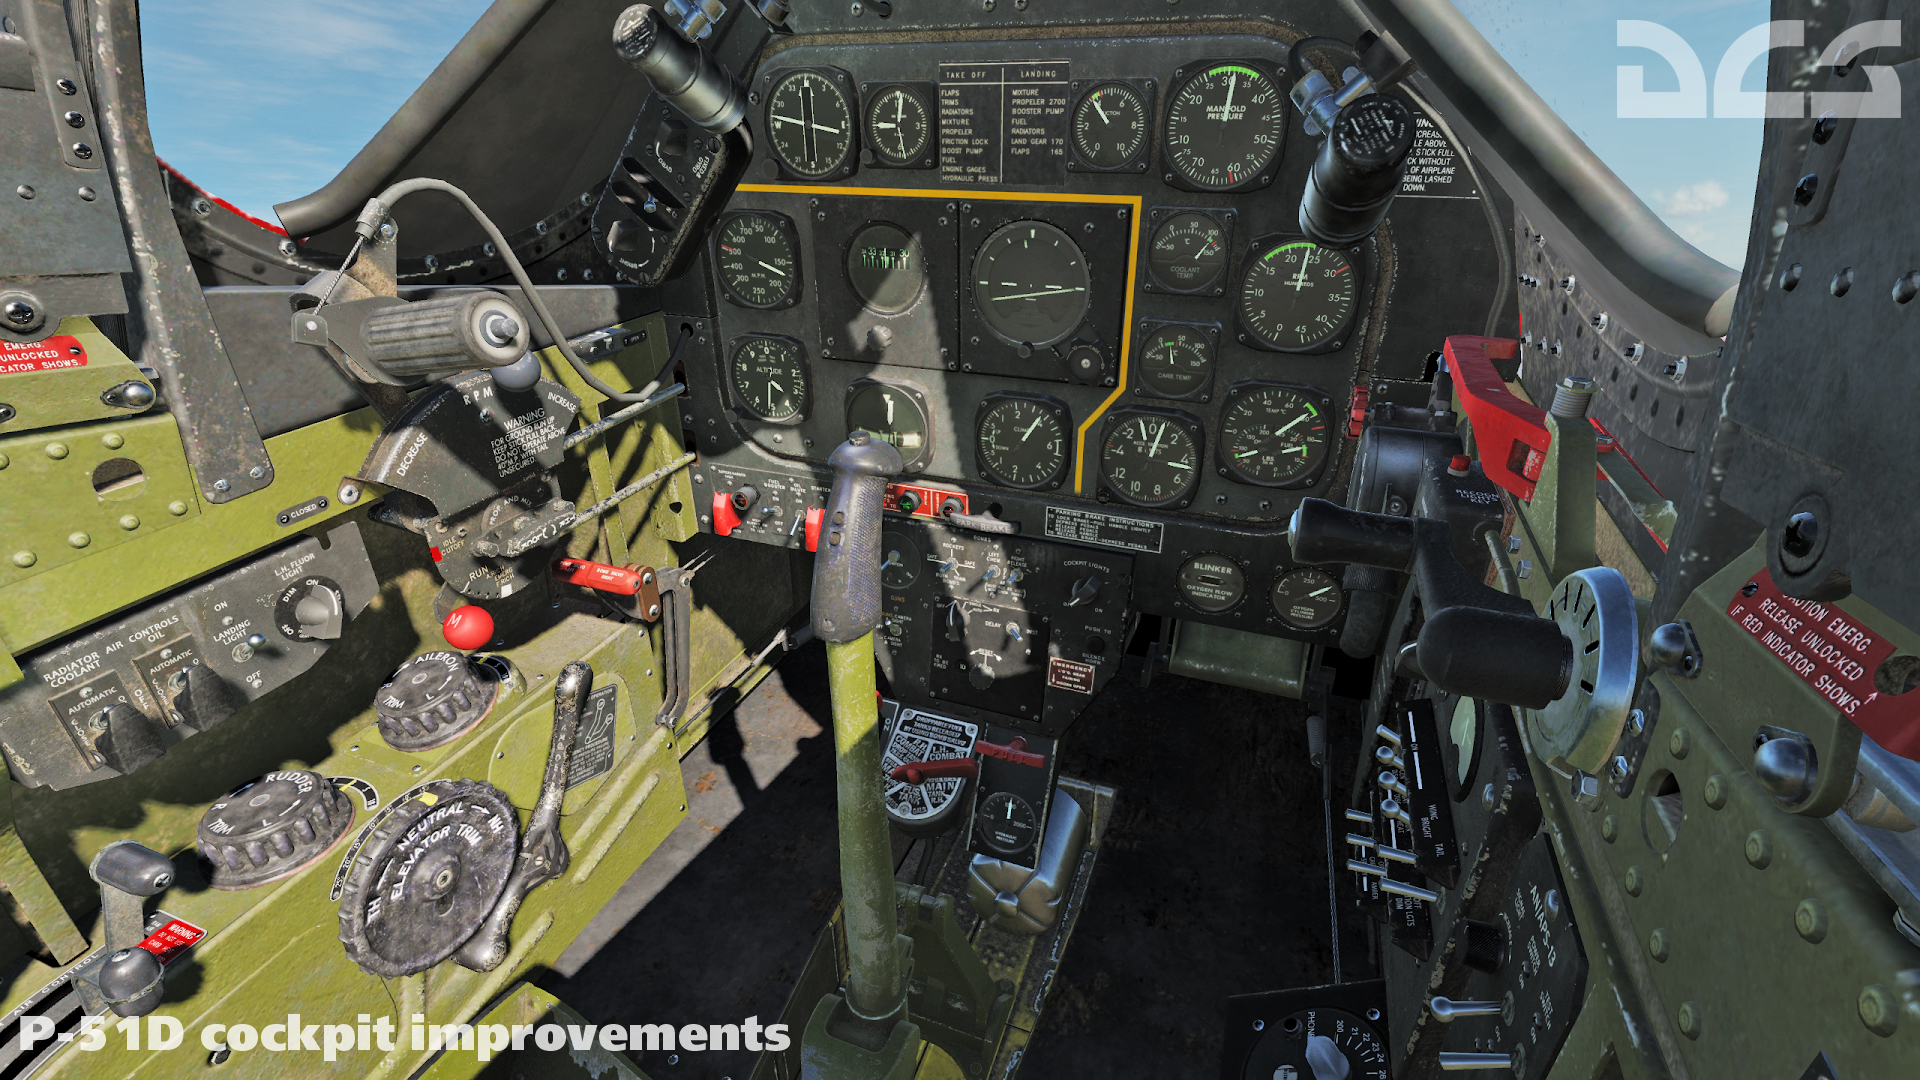 P-51D-cockpit-improvements-1.jpg